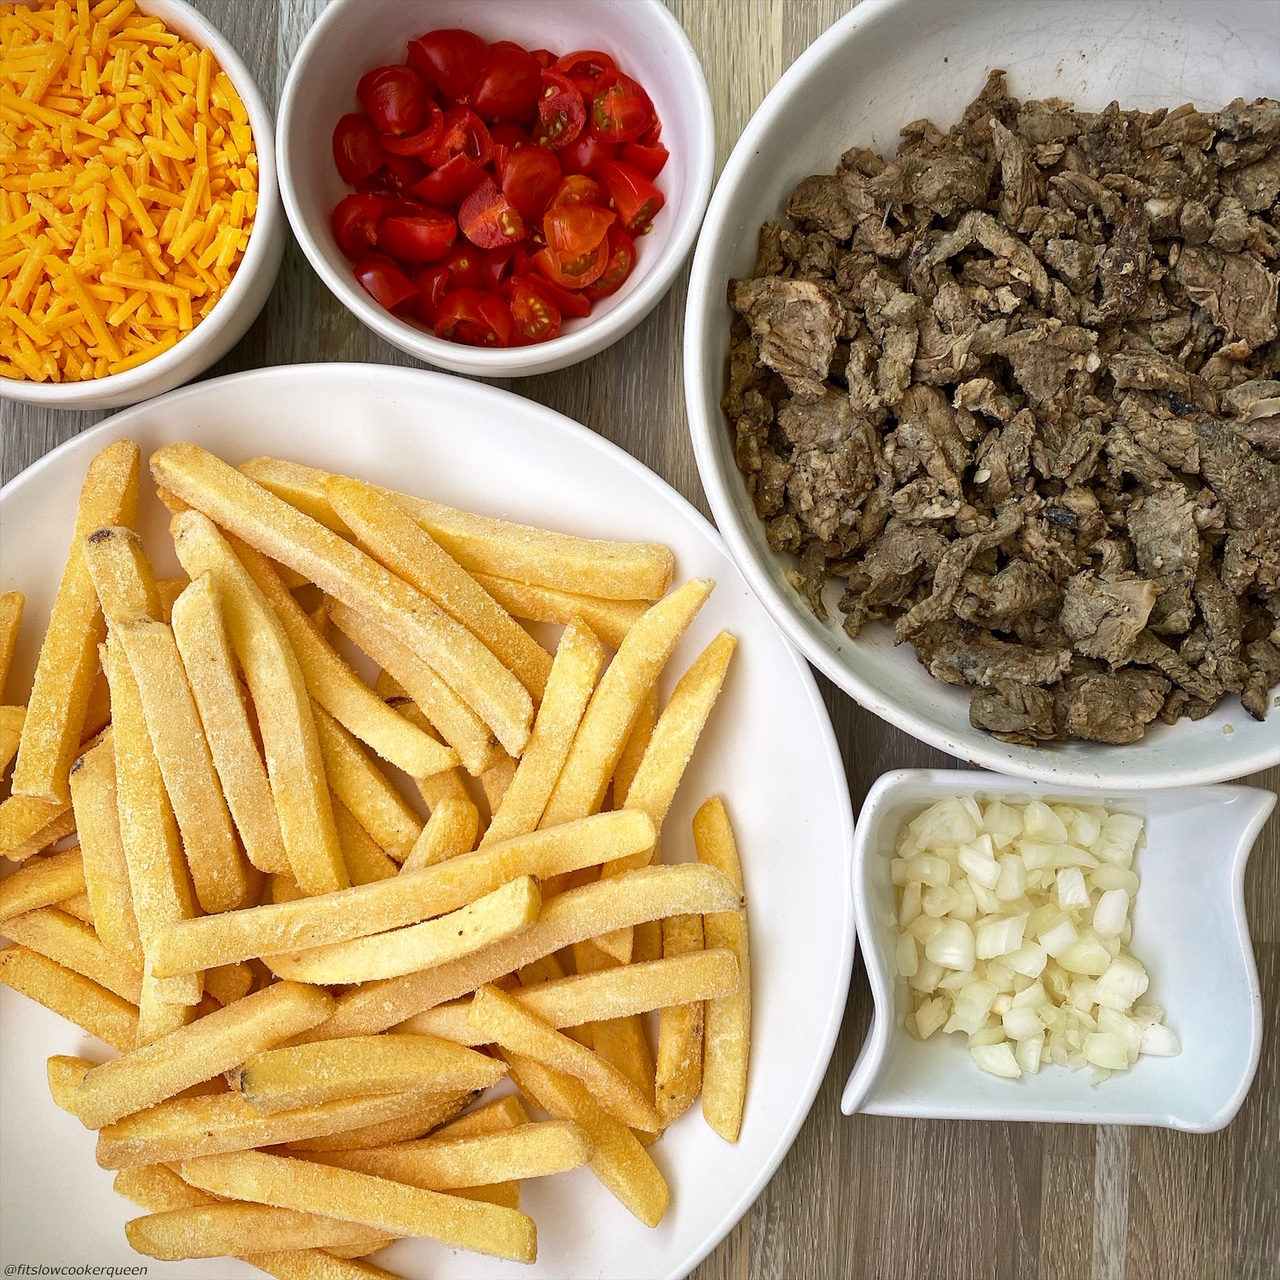 frozen french fries, cooked carne asada, shredded cheddar cheese, tomatoes, and onions in bowl